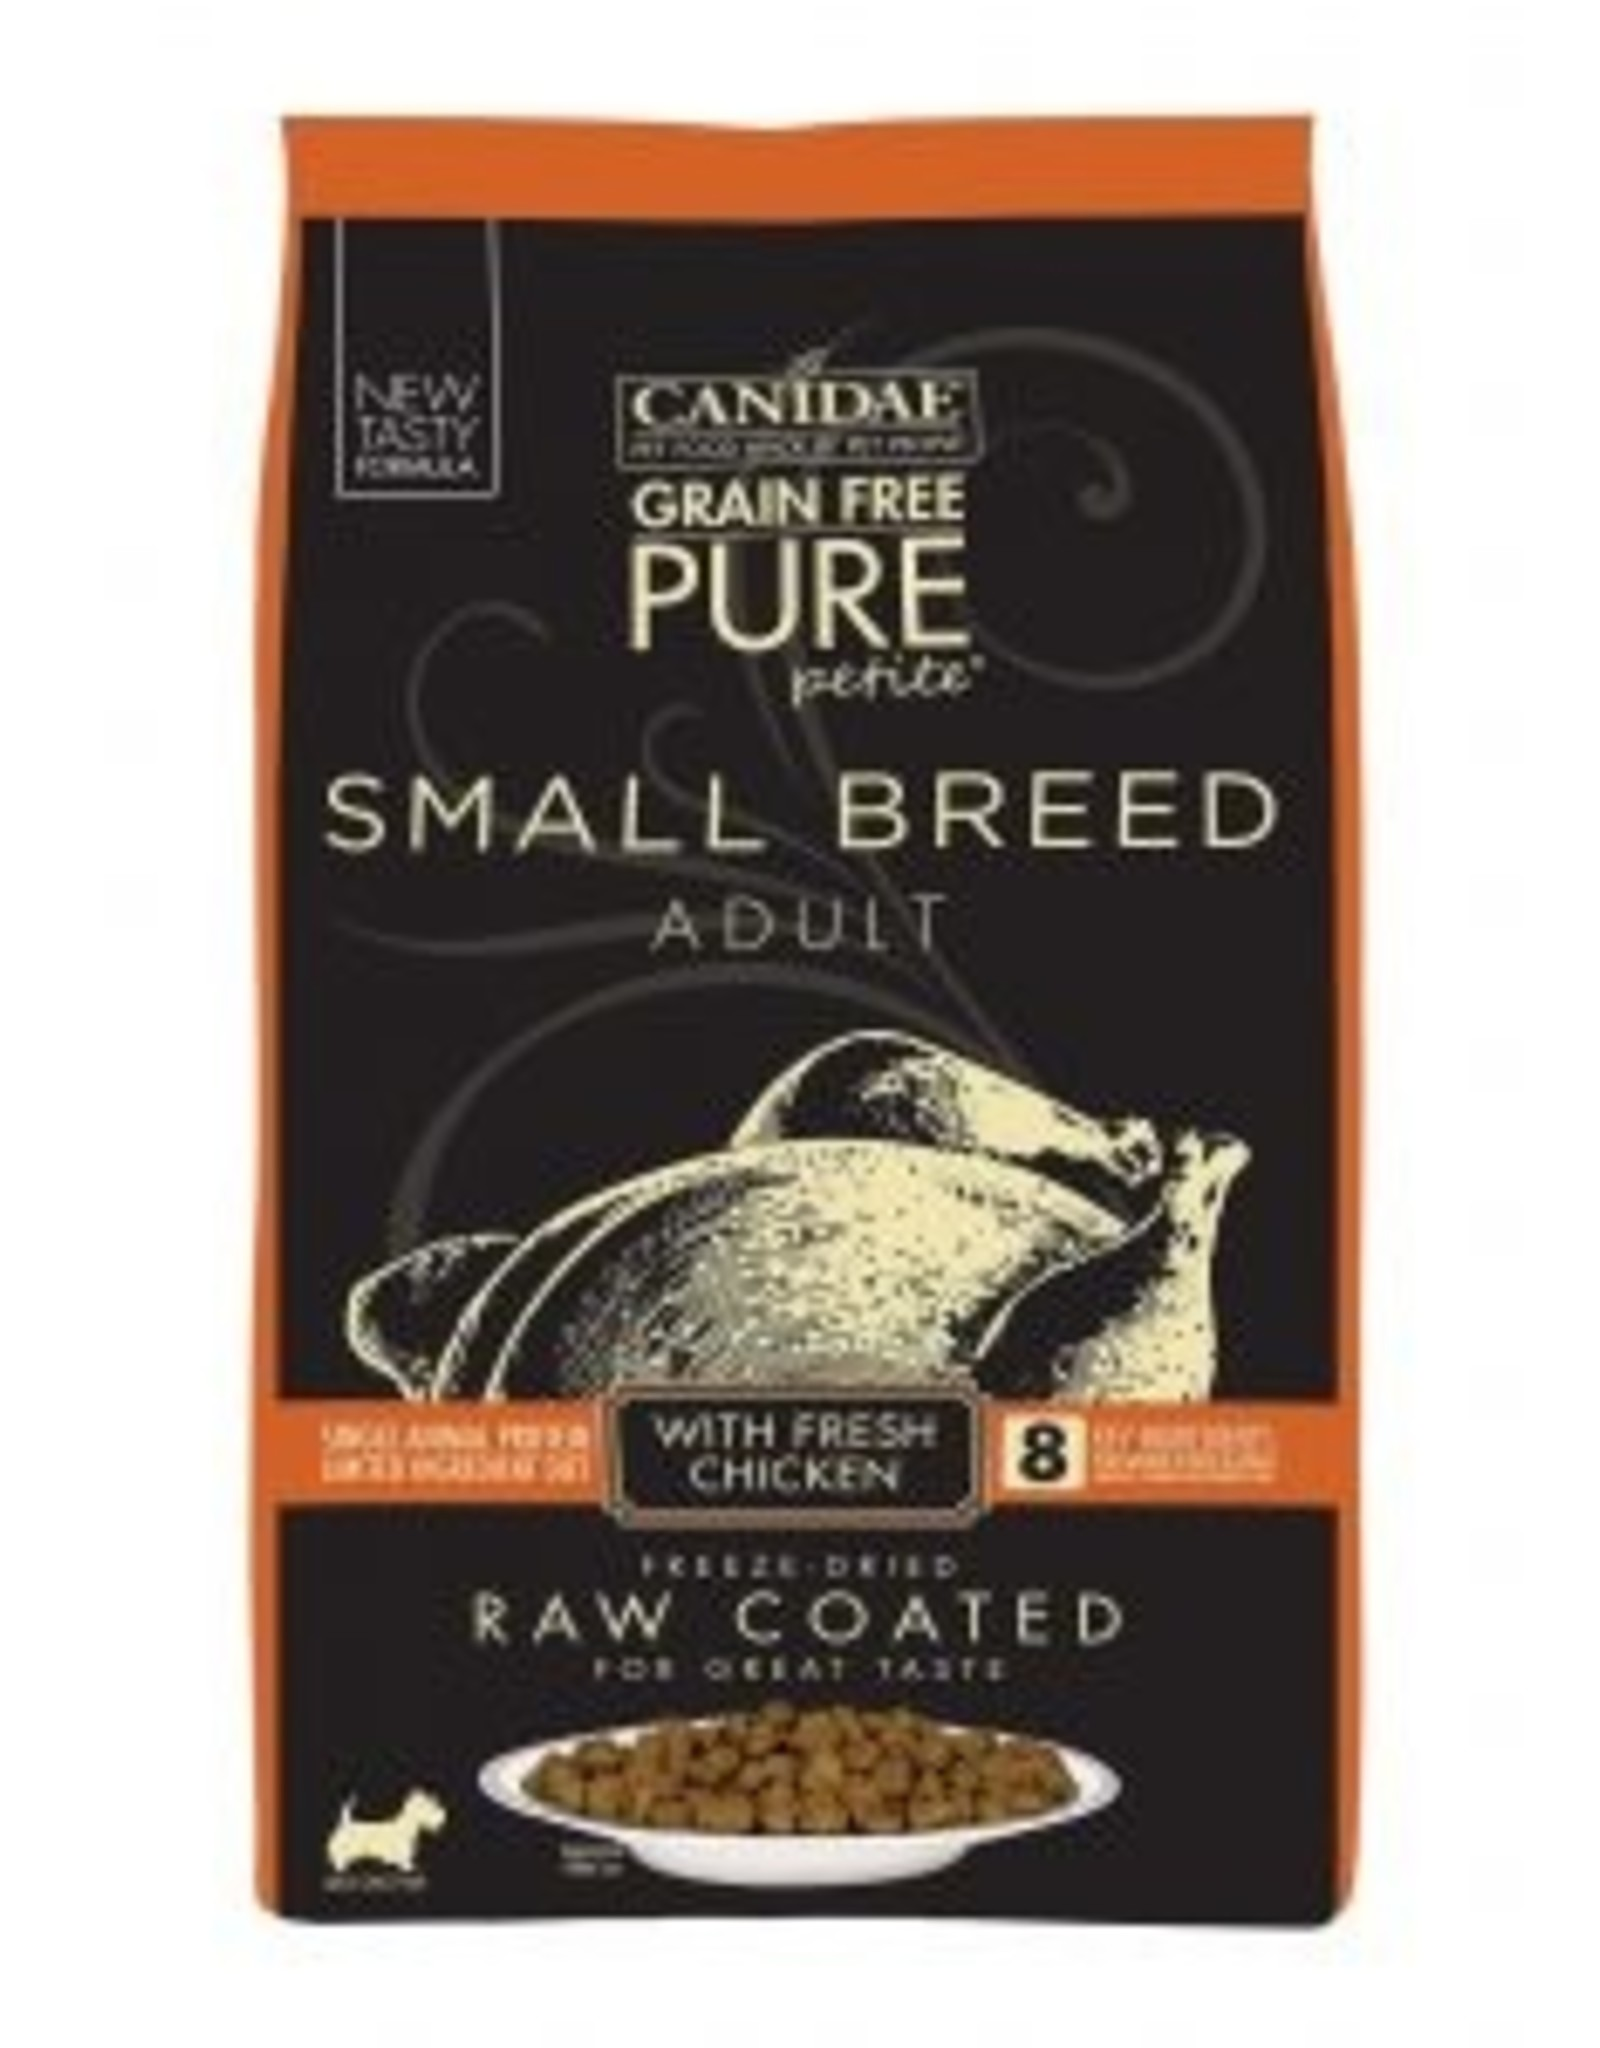 CANIDAE PET FOODS CANIDAE DOG PURE SMALL BREED RAW COATED CHICKEN 10LBS